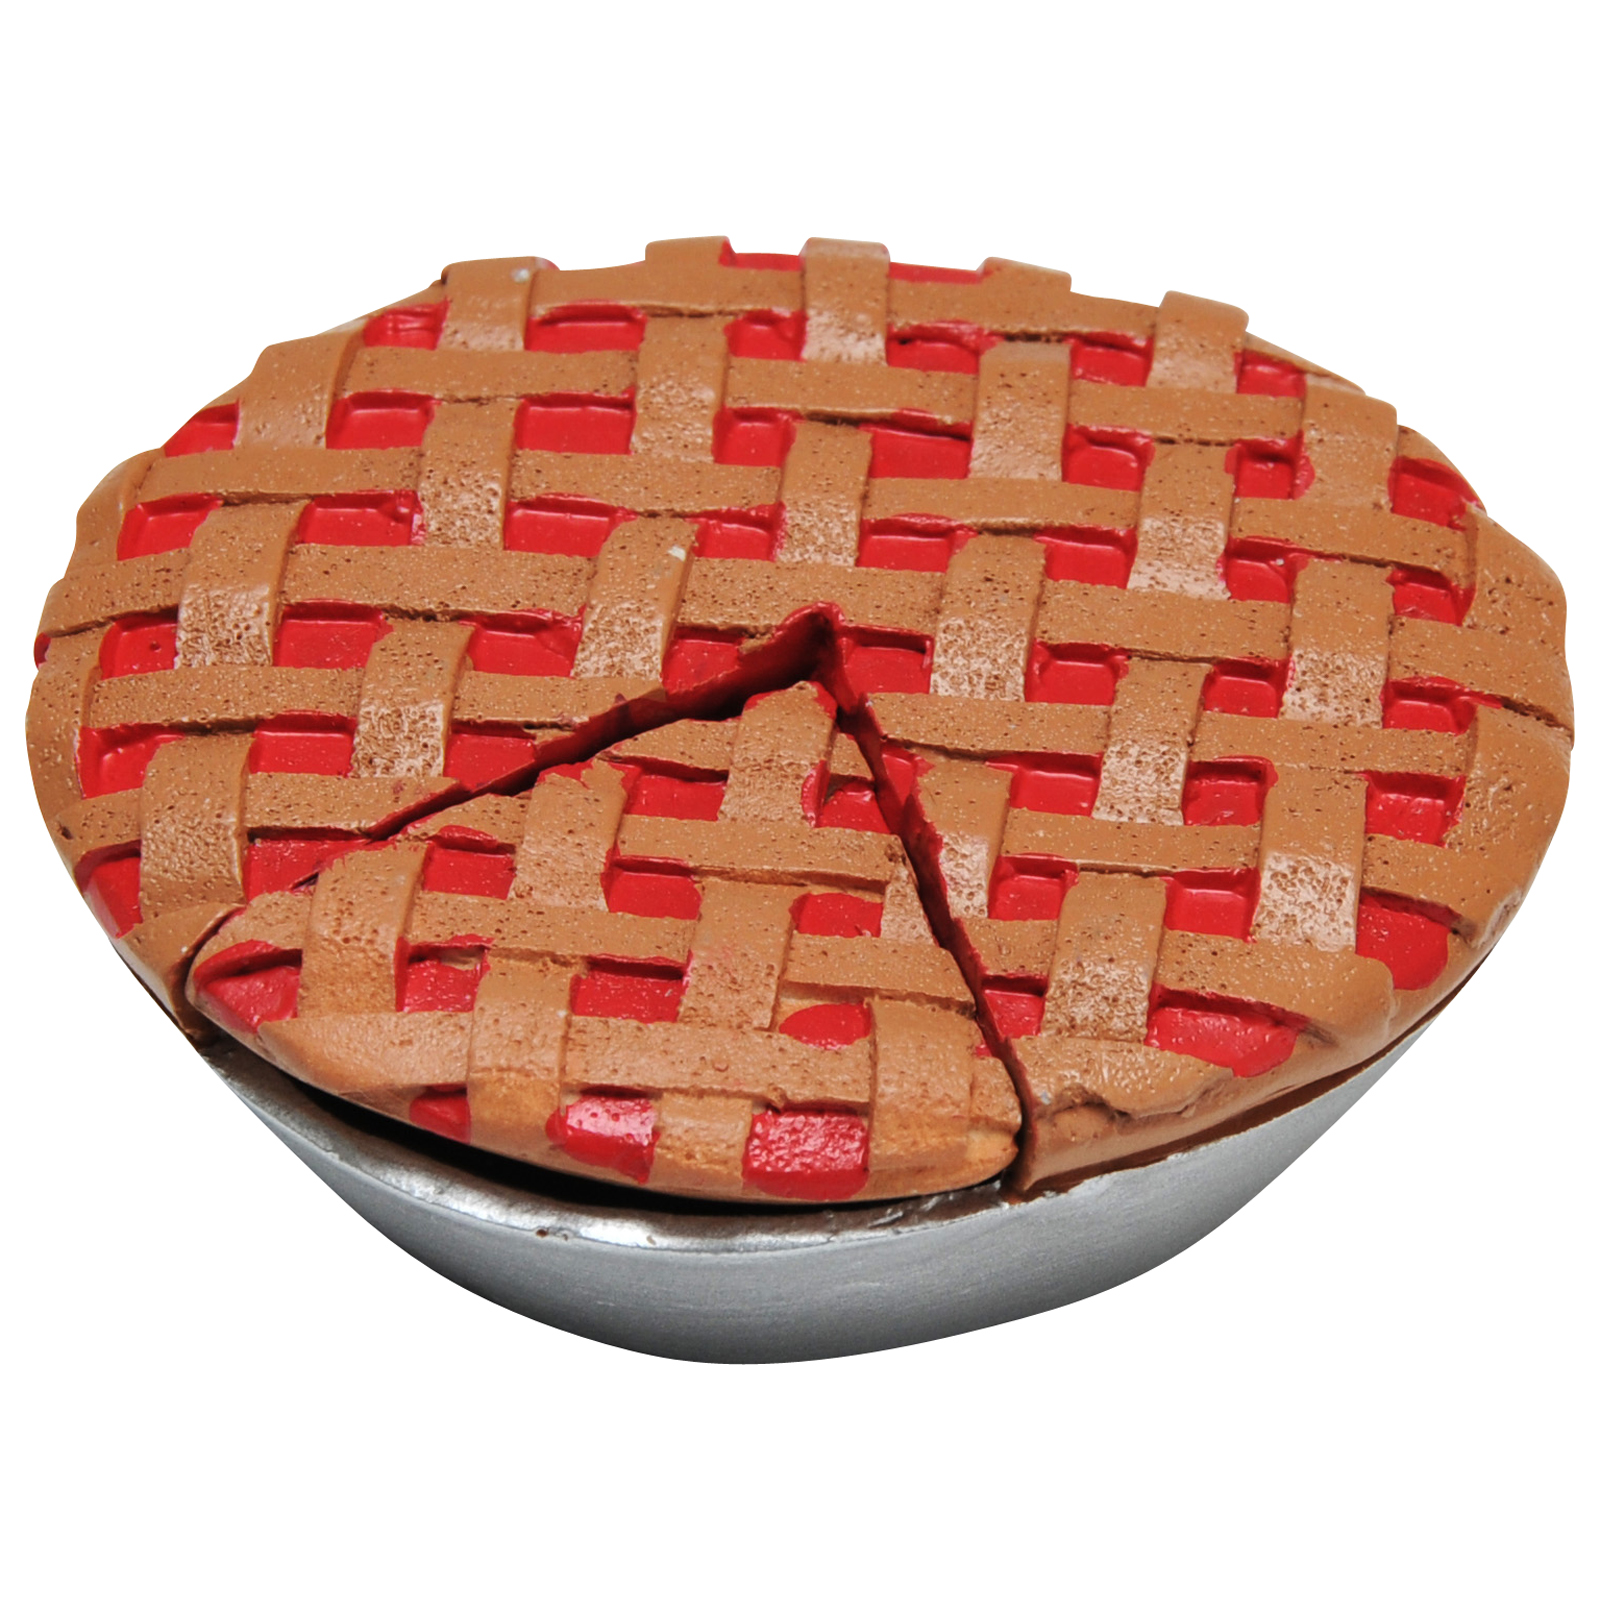 "The Queen's Treasures Bakery Collection Cherry Pie for 18"" Doll Furniture & Play Kitchen Food Accessories"